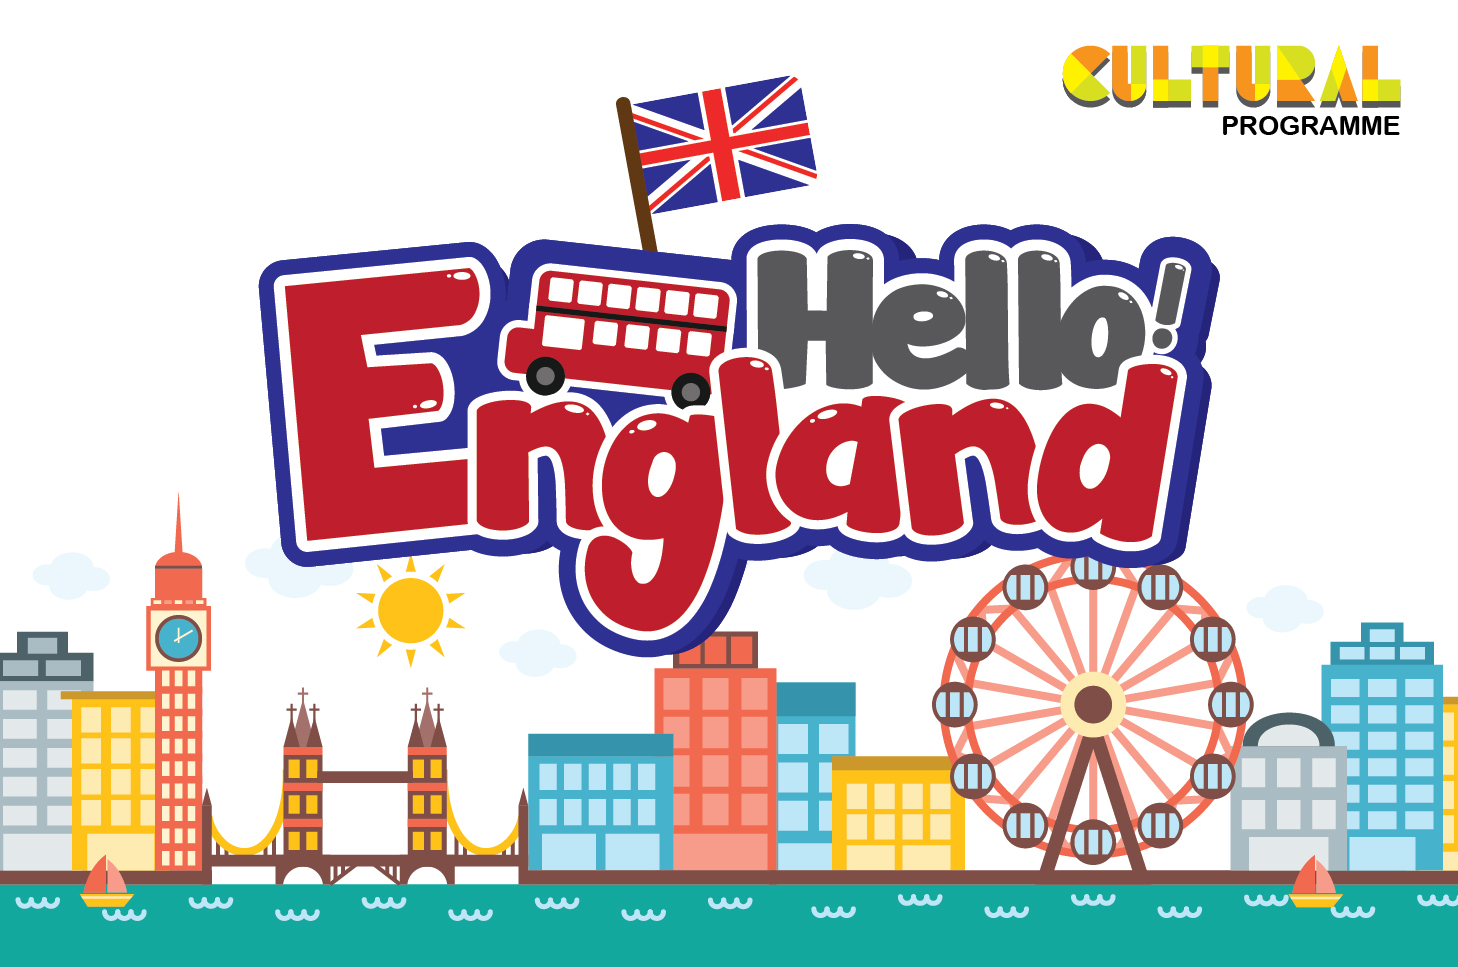 Cultural Programme – England